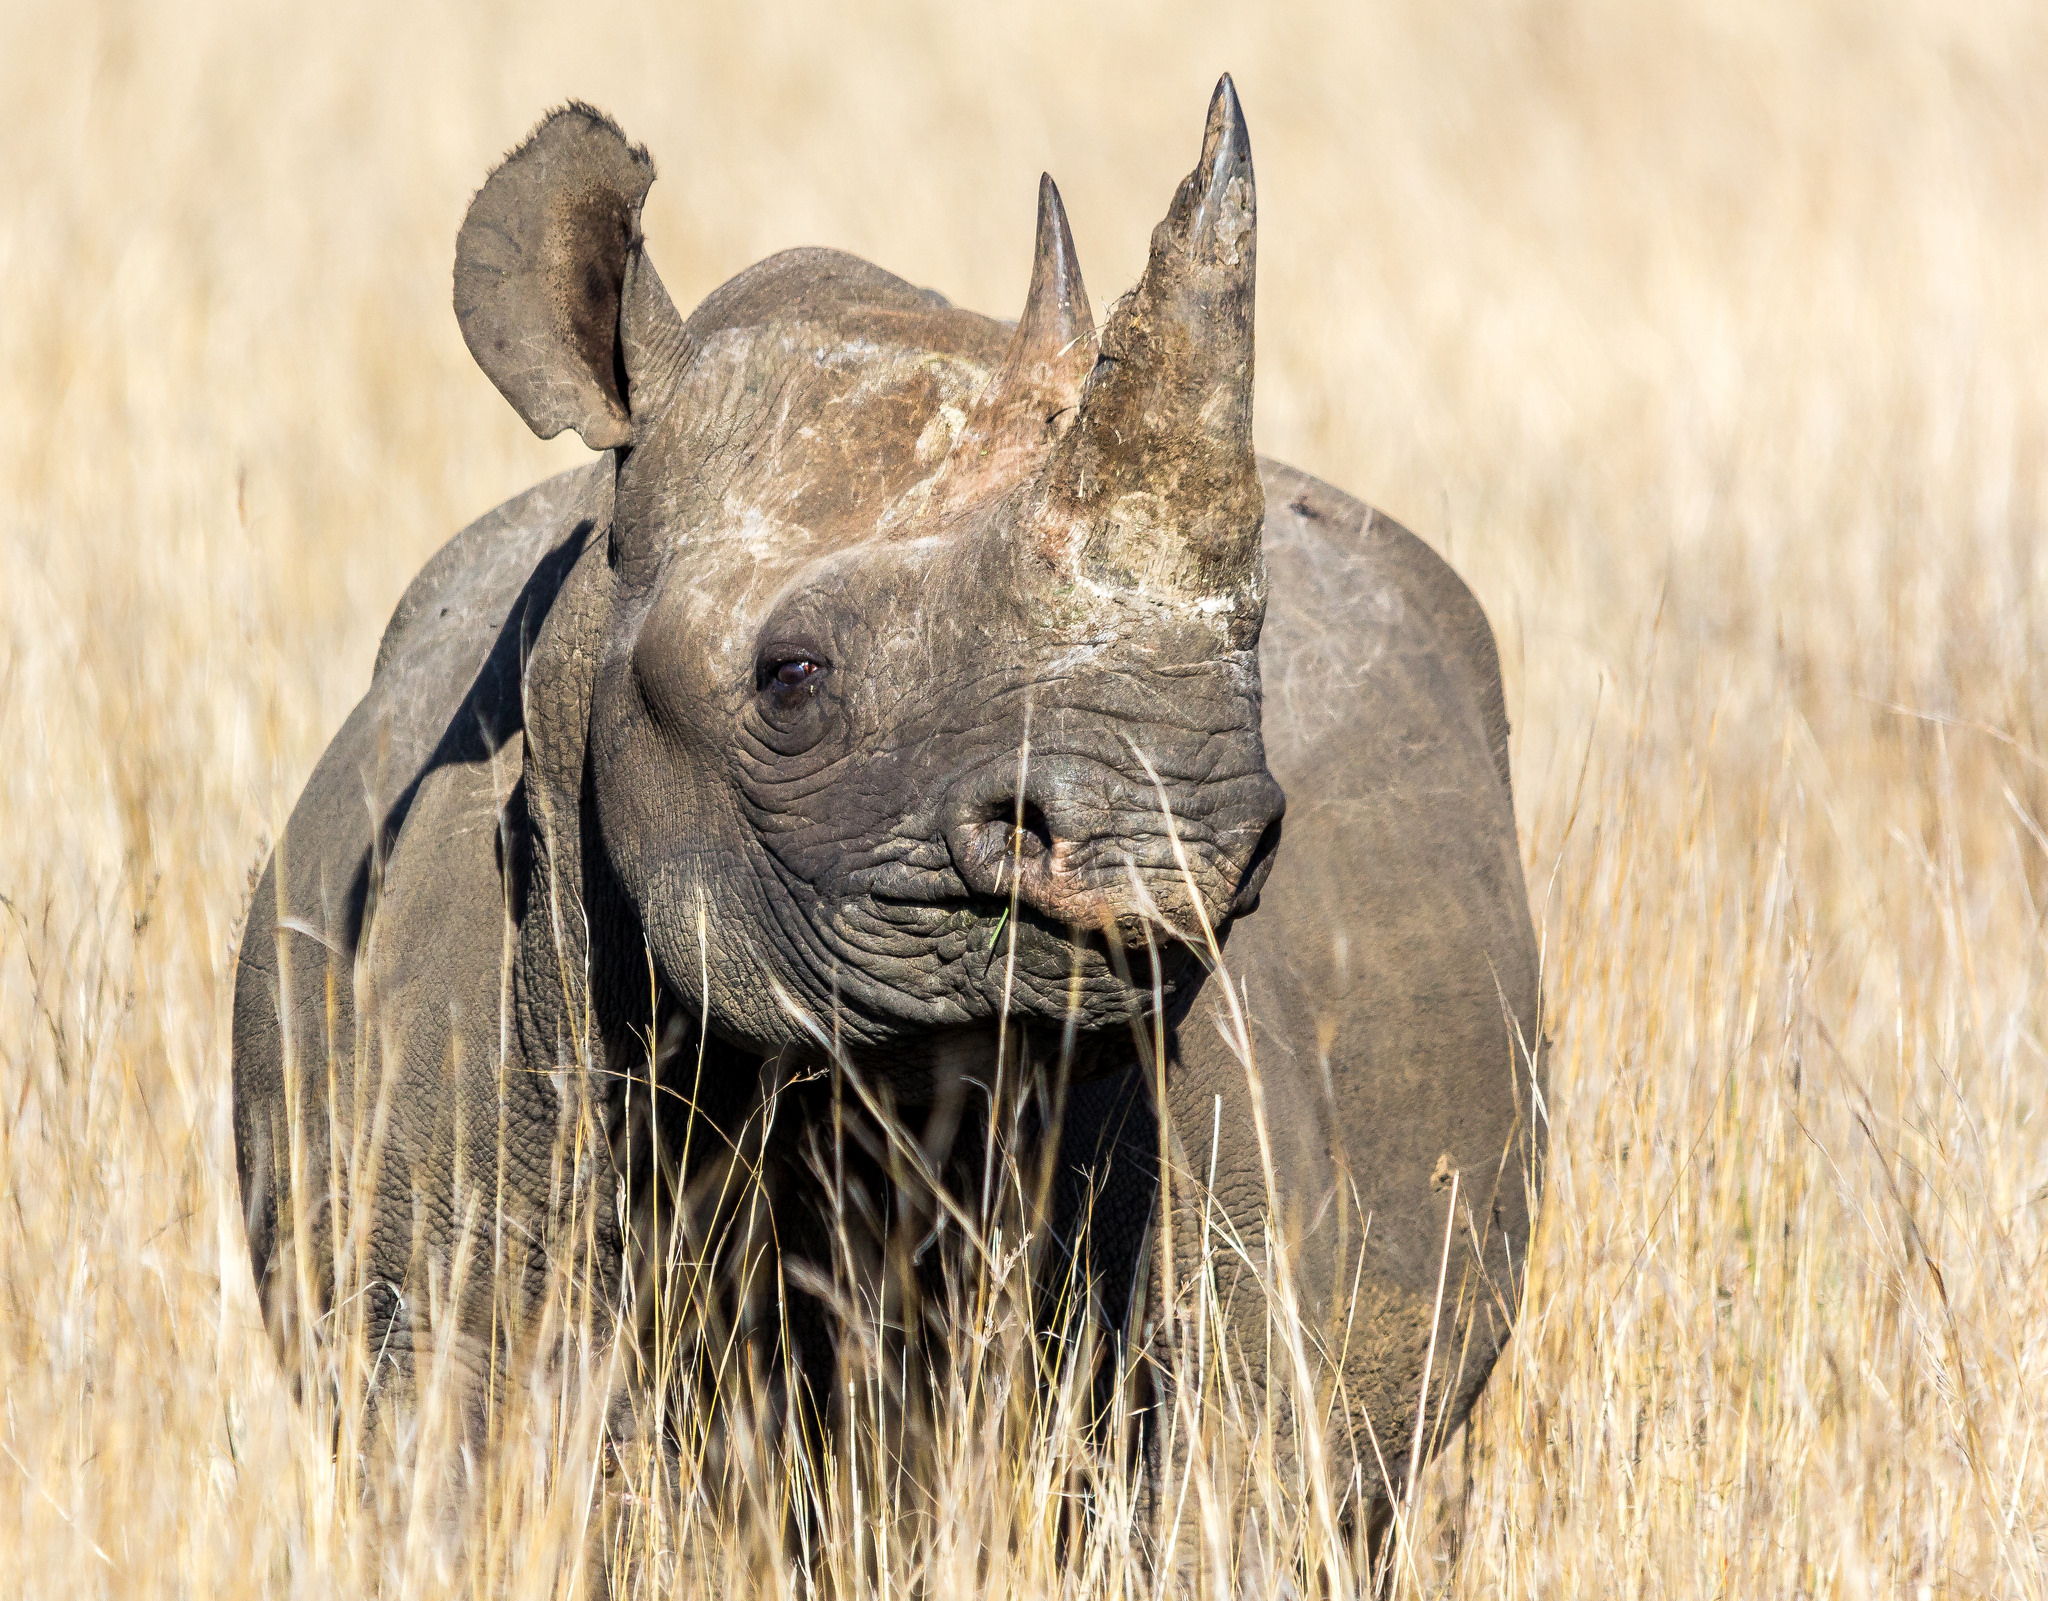 Black rhino. Image by  Gerry Zambonini